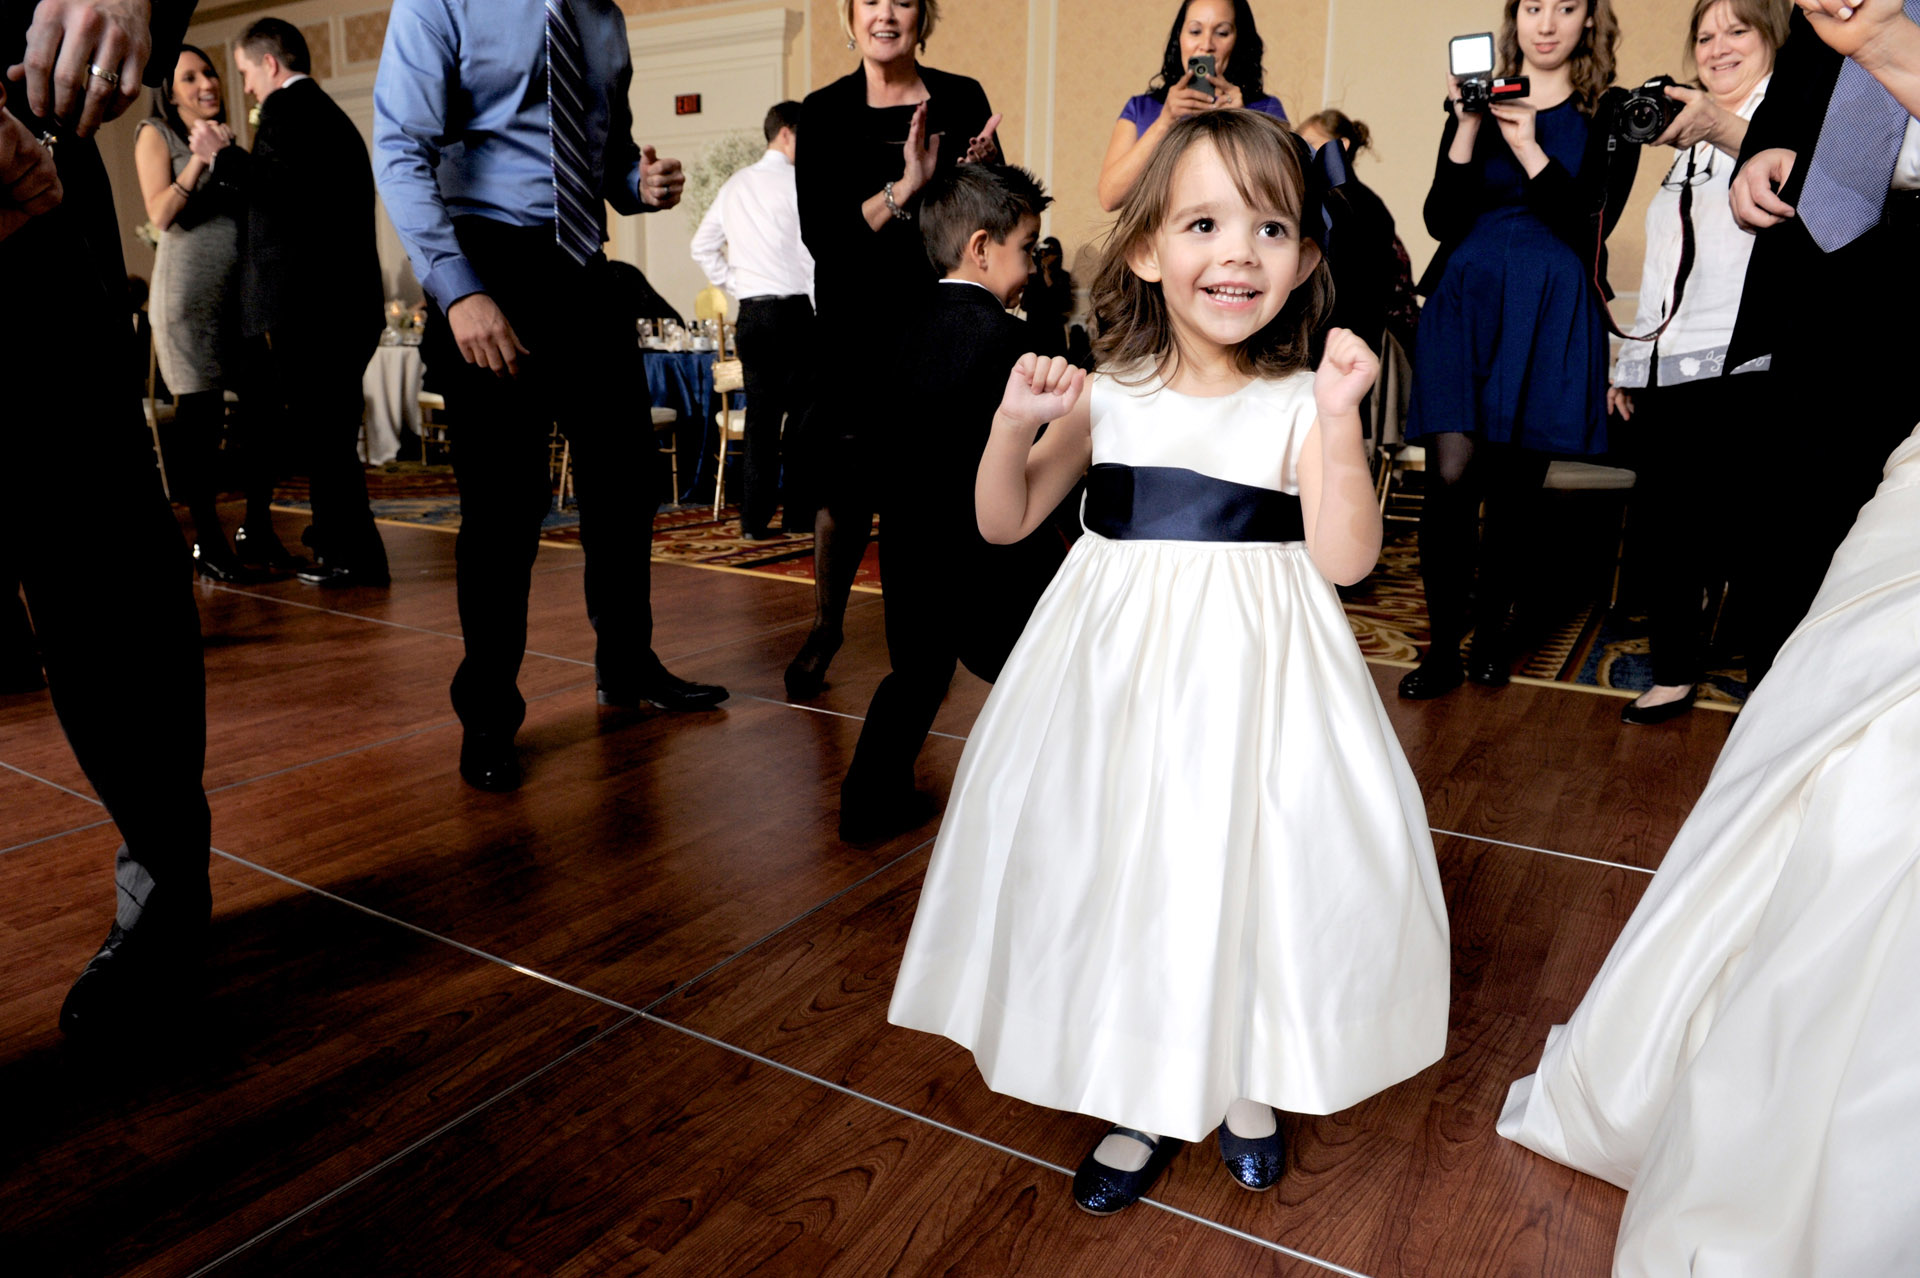 The Historic church Sweetest Heart of Mary and the Dearborn Inn of Detroit's historic church in Detroit and Dearborn, Michigan wedding photographer's photo of a couple of the flower girl dancing at the wedding reception at the Dearborn Inn in Dearborn, Michigan.